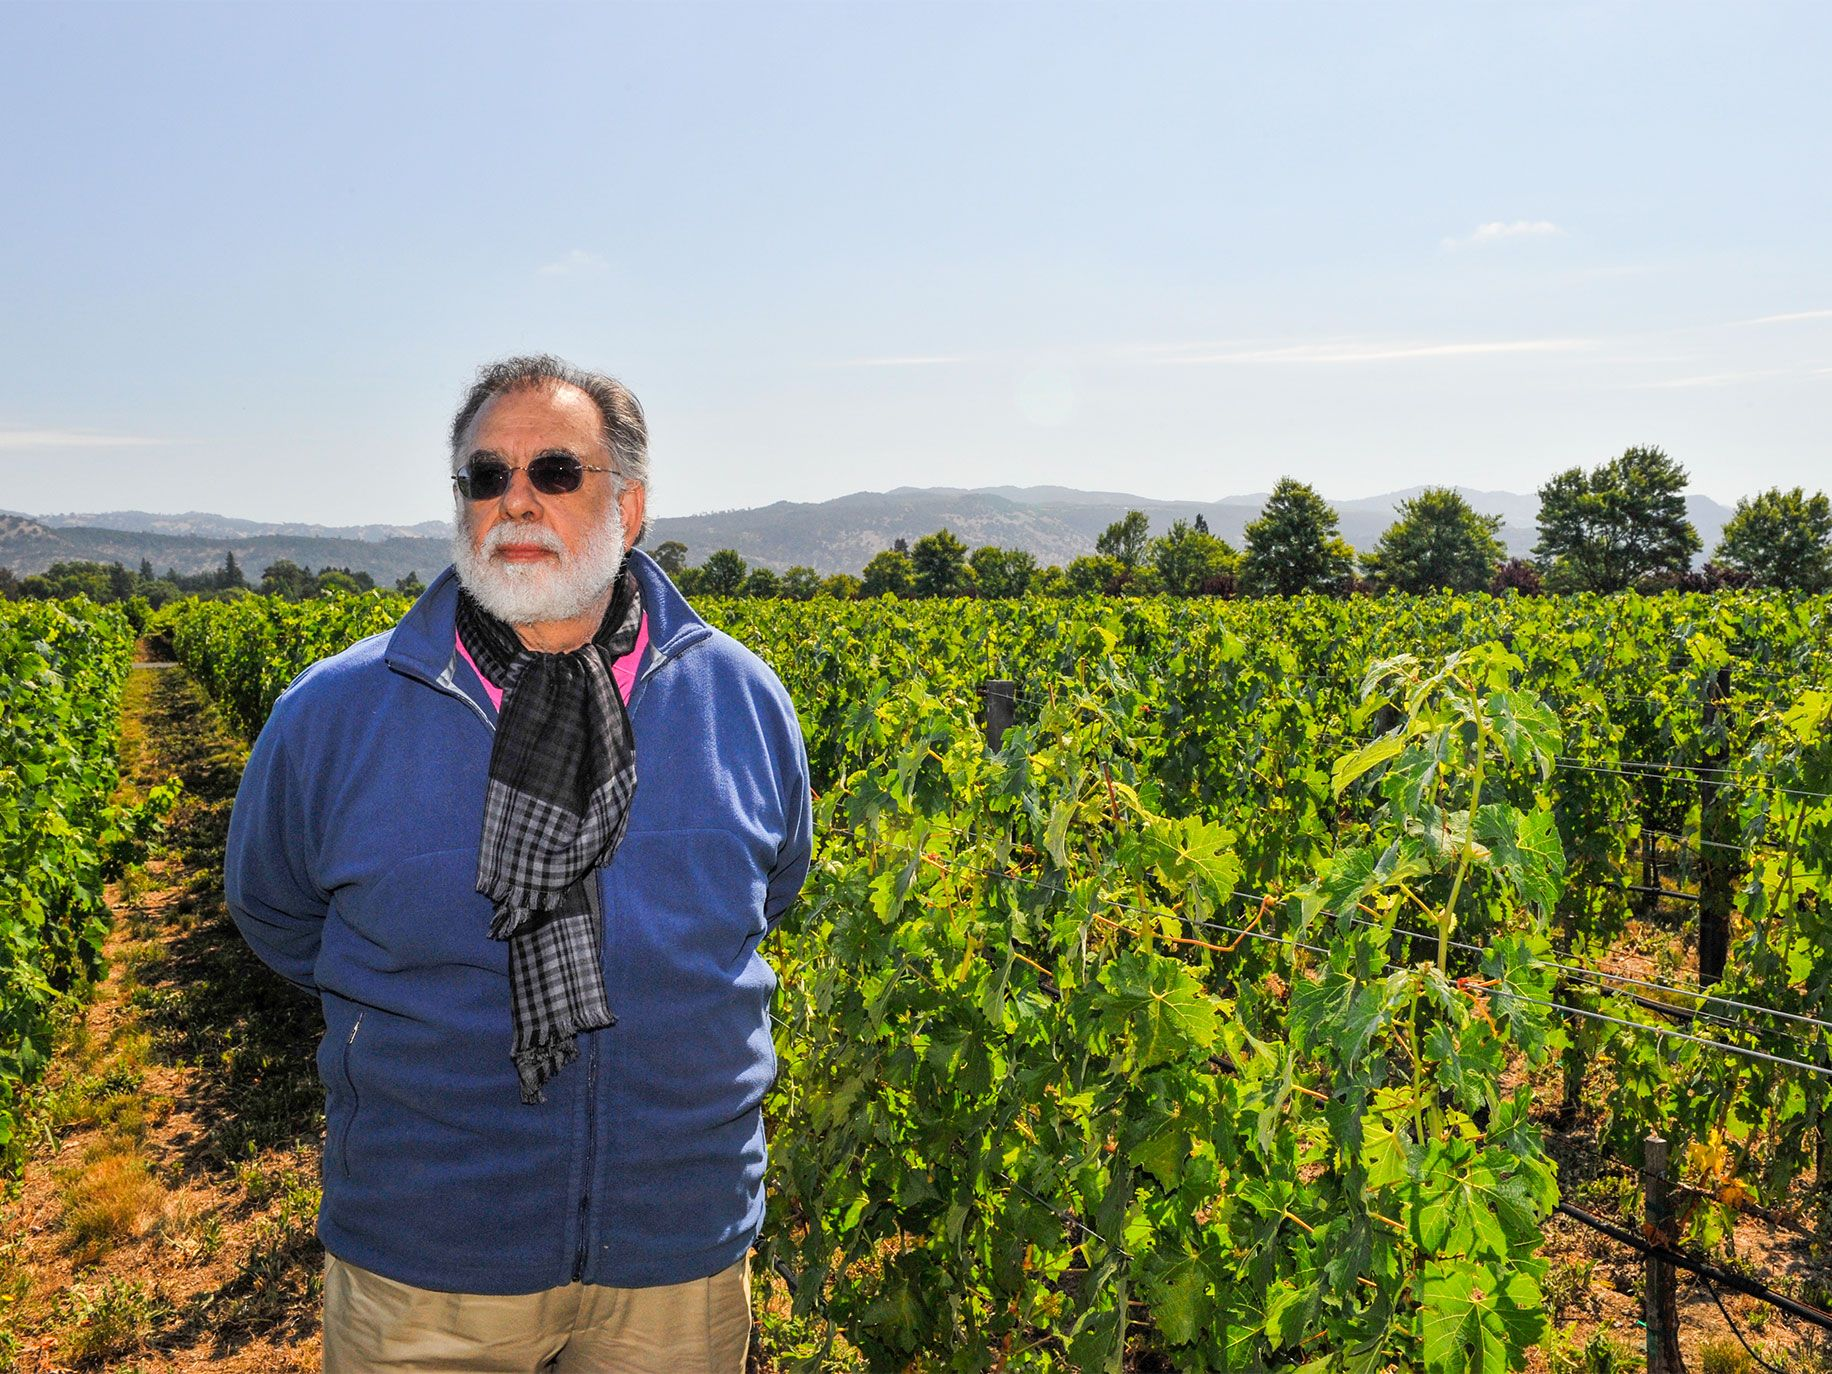 With his movie-making years behind him, Francis Ford Coppola is turning his attention to his next production: reviving the storied Inglenook winery in Rutherford. Previous owners had cut prices and quality, and Coppola is having parts of the vineyard replanted and focusing on upscale, better-quality wines, such as Rubicon.